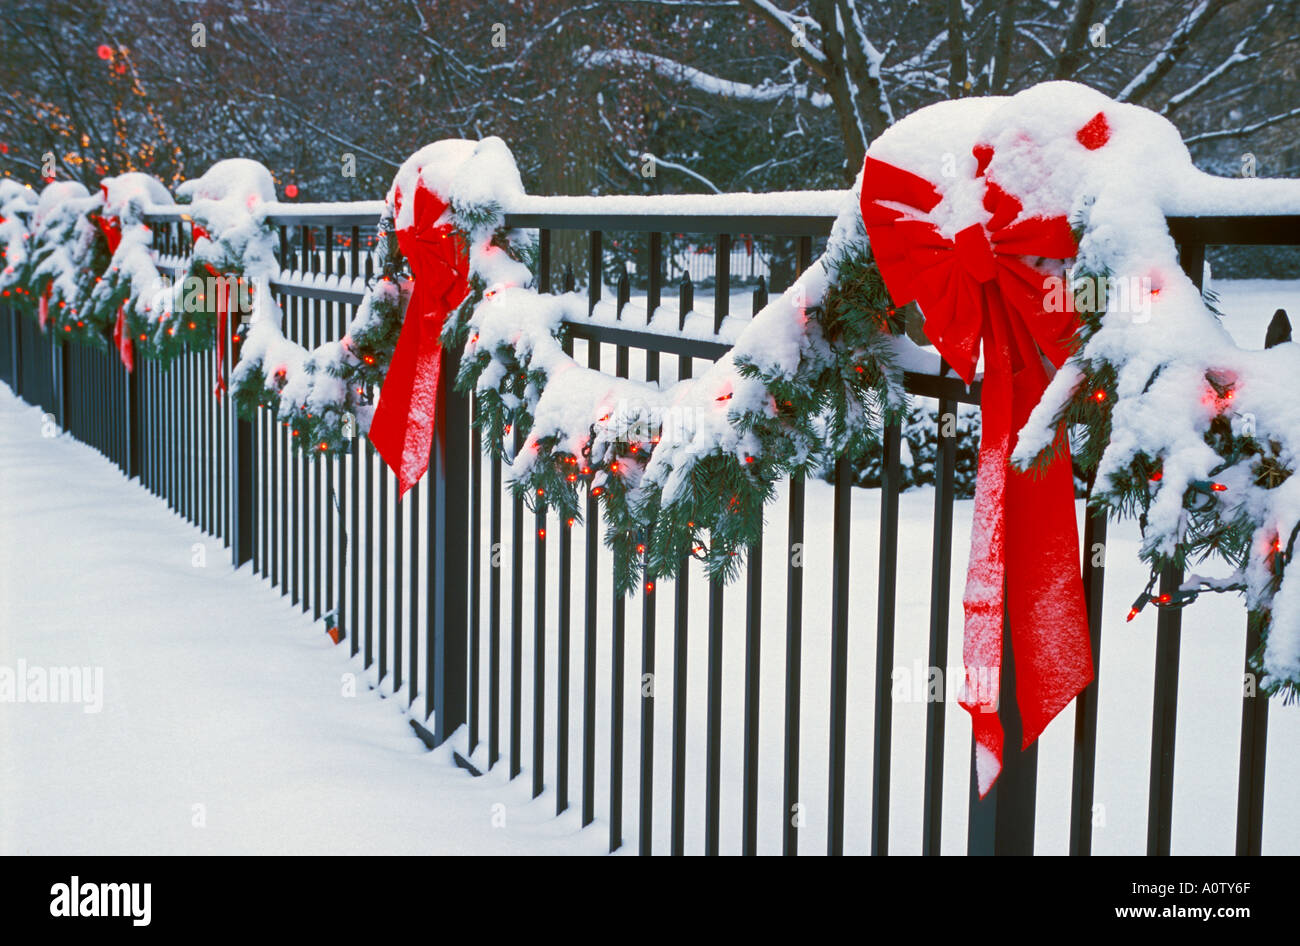 Red bows and Christmas lights cover in snow along a fence - Stock Image